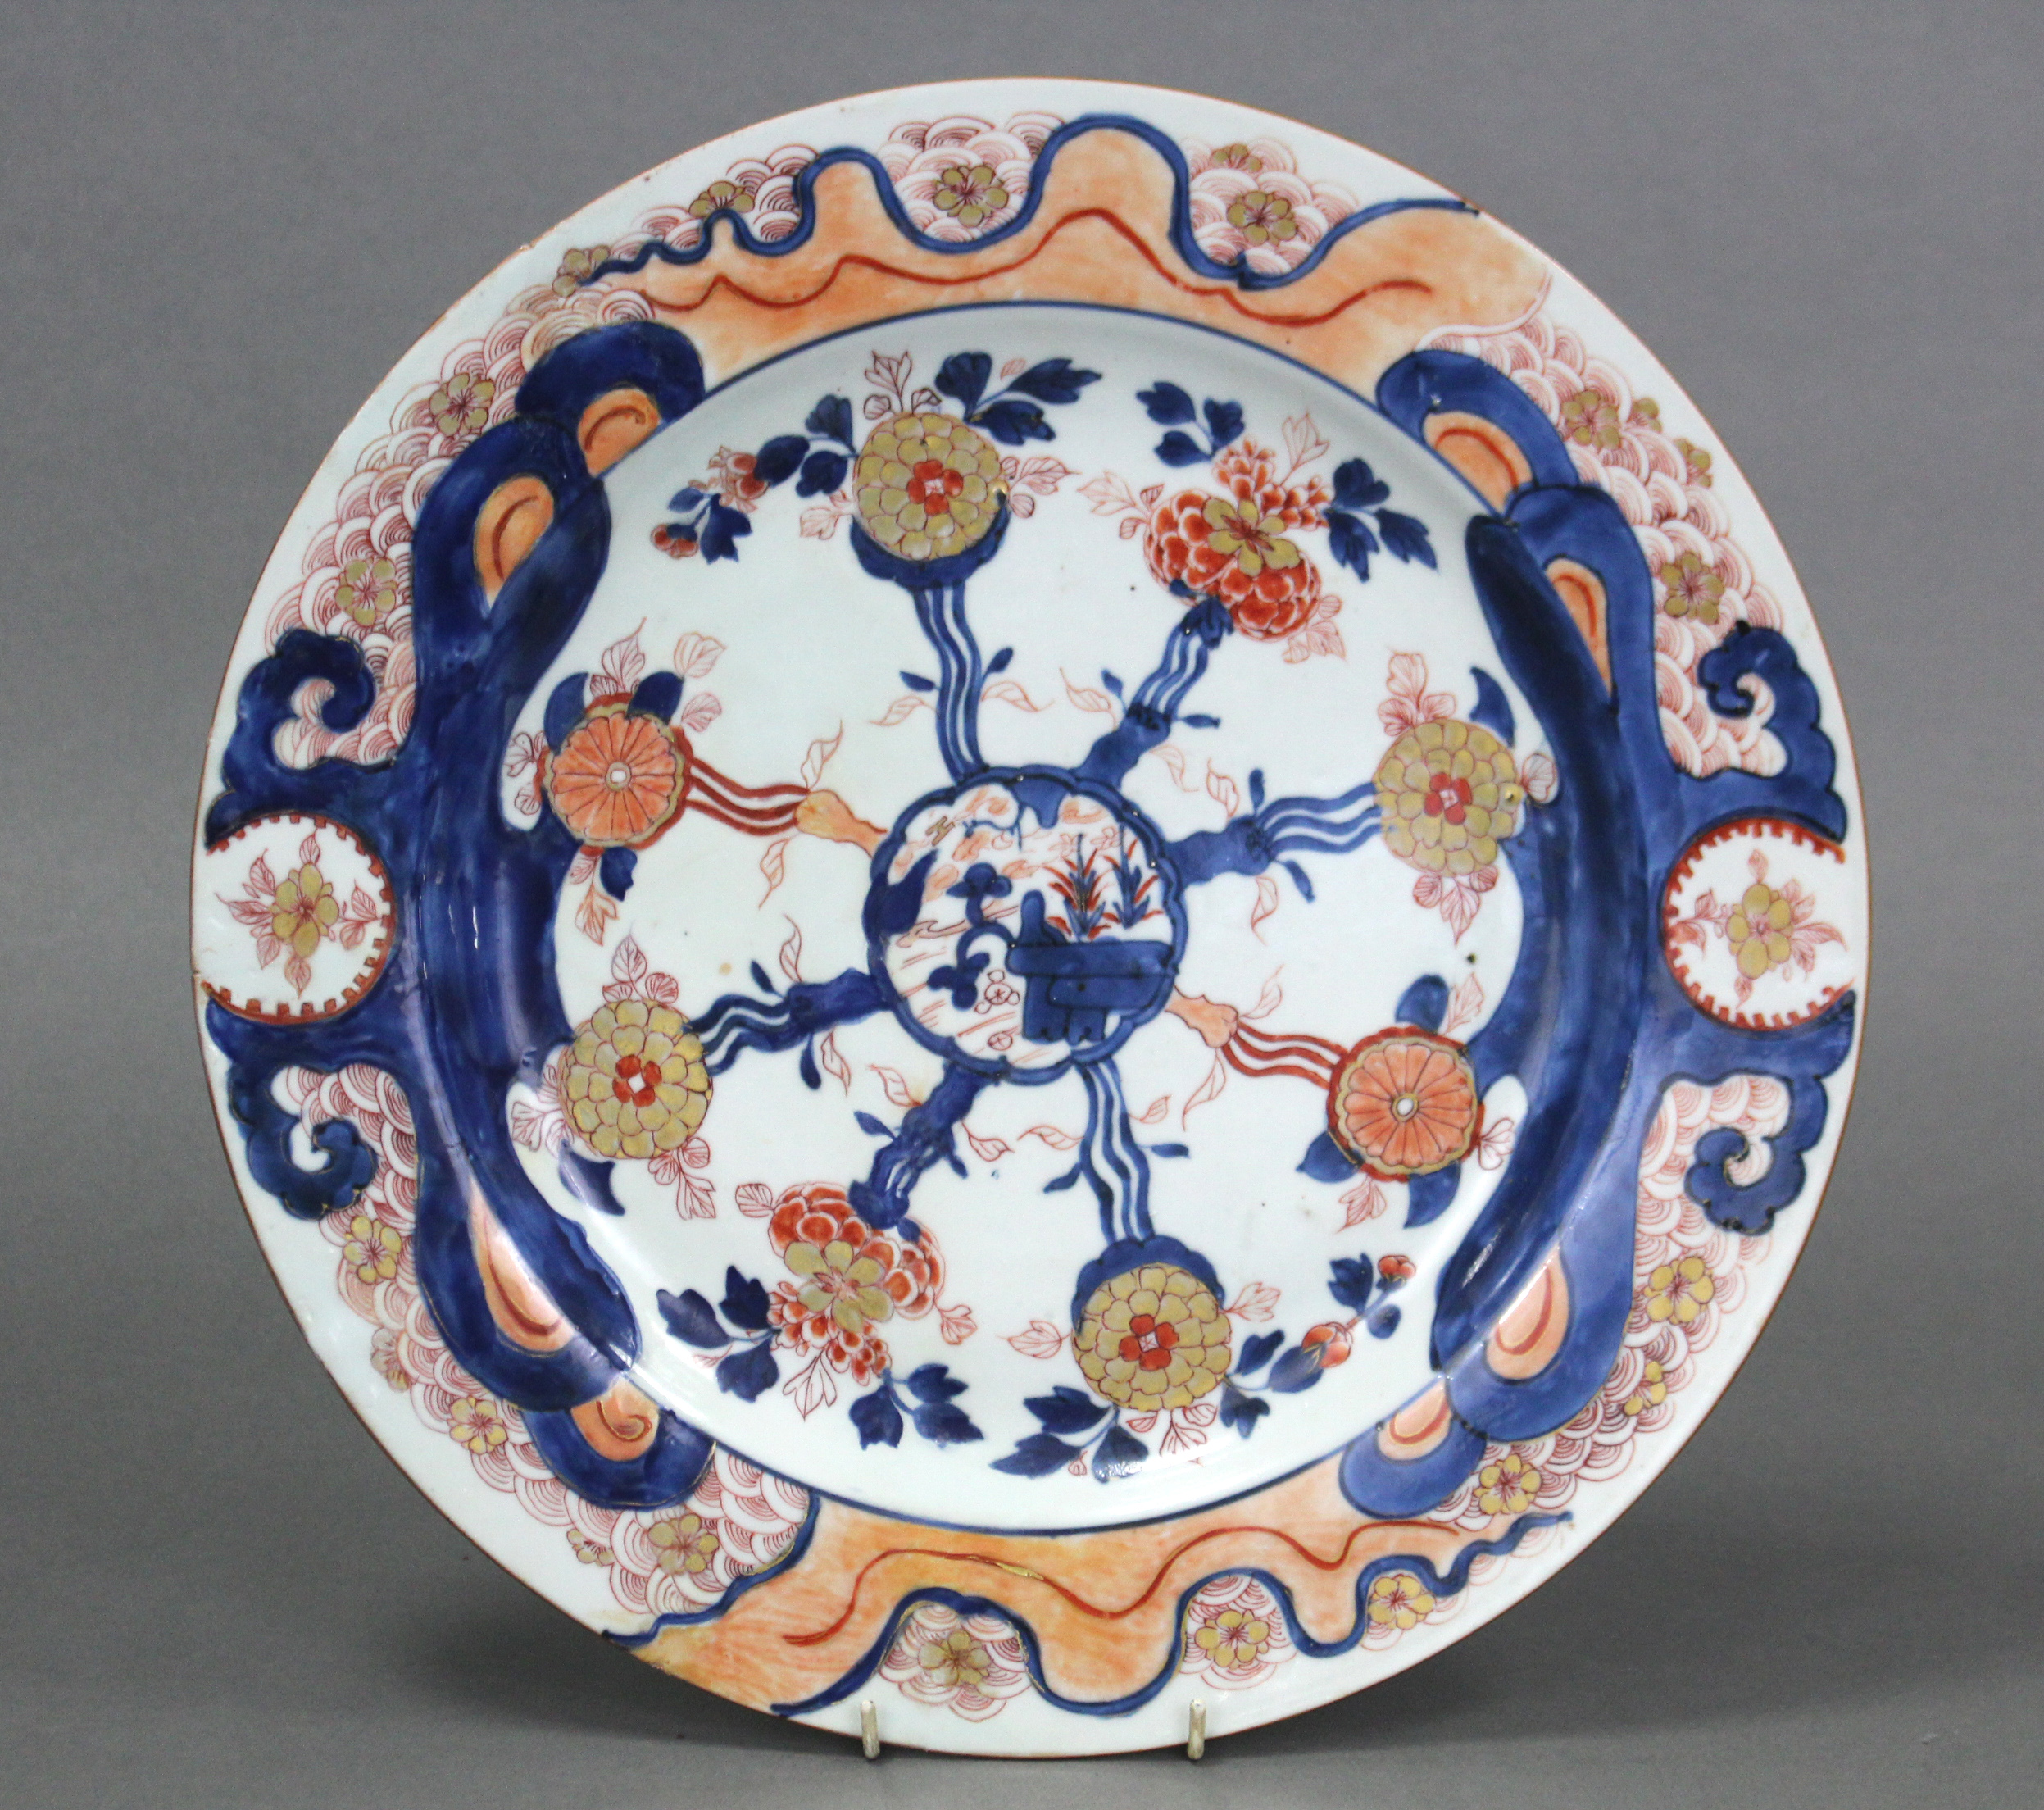 Lot 191 - An 18th century Chinese Imari porcelain charger, the centre with landscape decoration & stylised